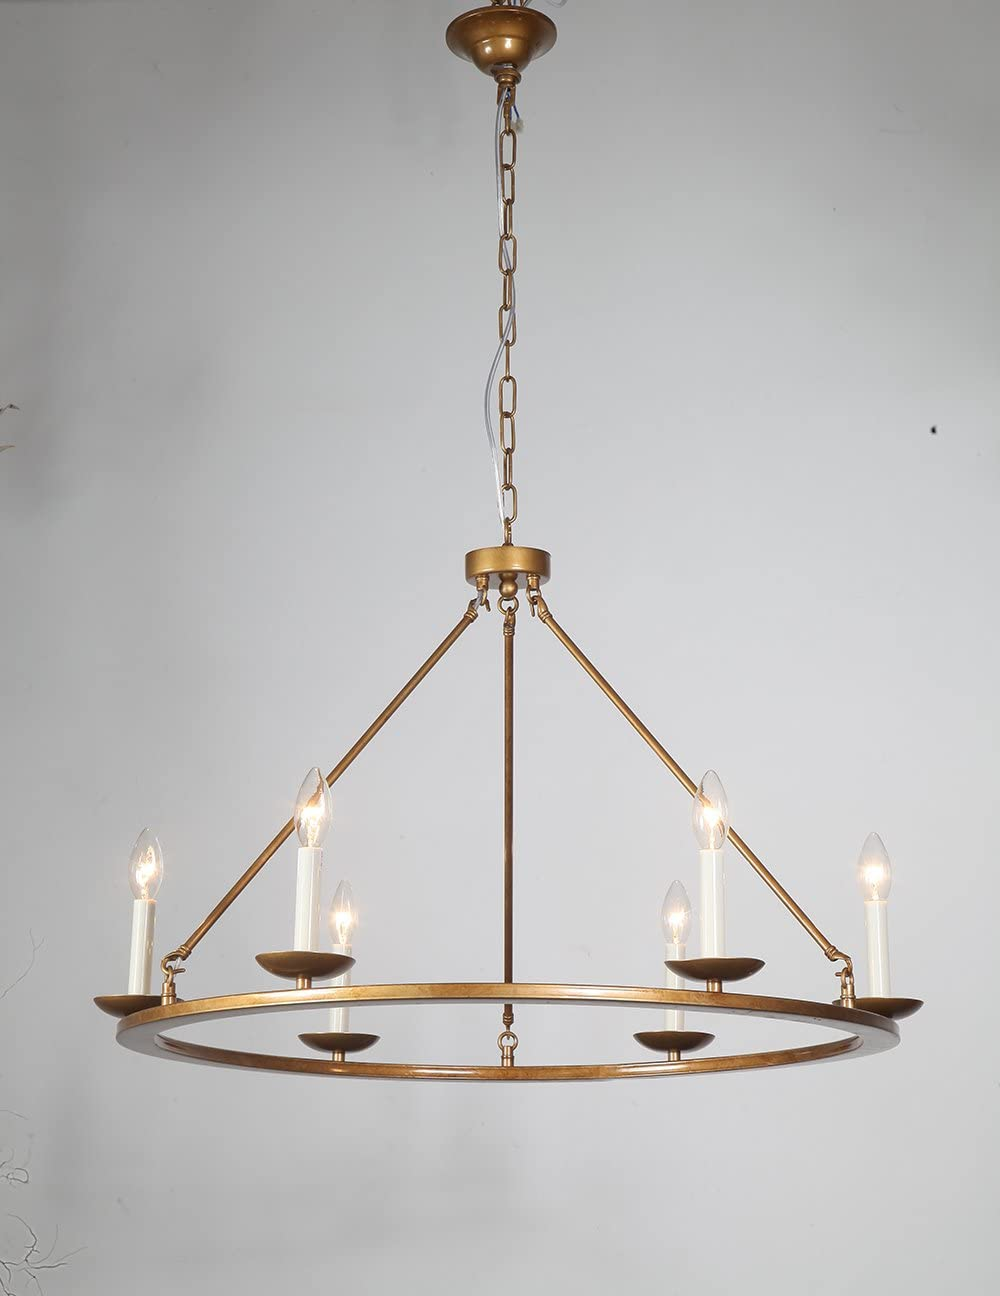 Kitchen Island Pendant Light, A1A9 Retro Round Candle LED Chandelier Lighting Wagon Wheel Ceiling Lights for Farmhouse, Dining Room, Table Light, Entryway, Hallway, Foyer, D30 X H23 Chain 59